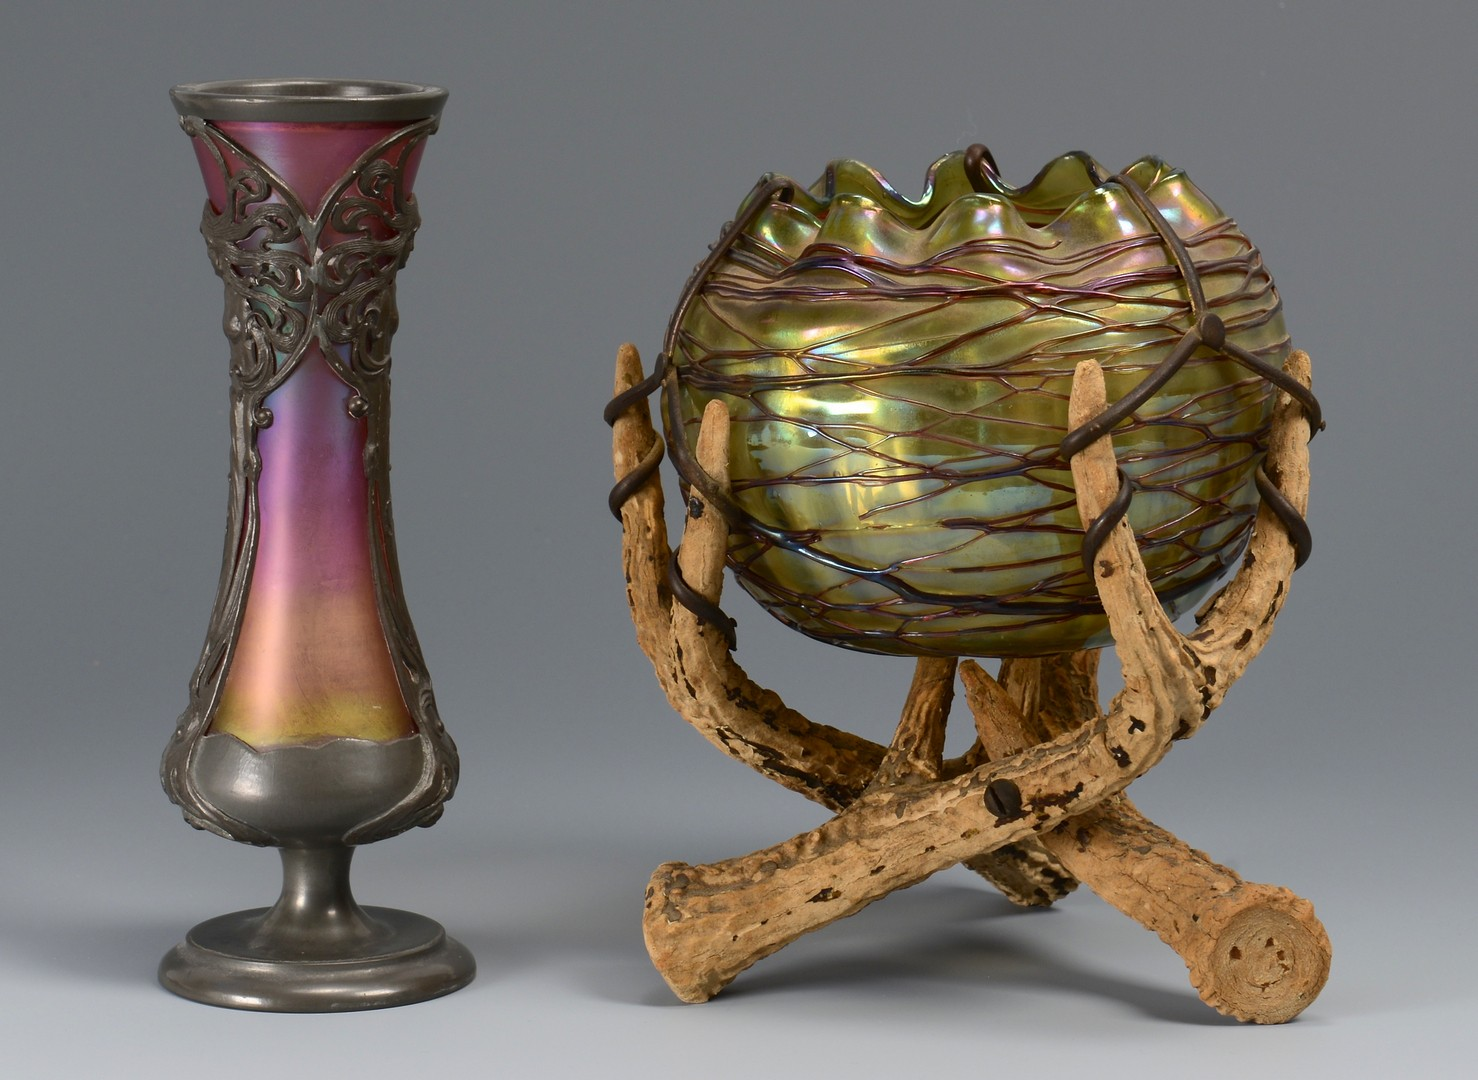 Lot 213: 2 Horn and silver mounted art glass items